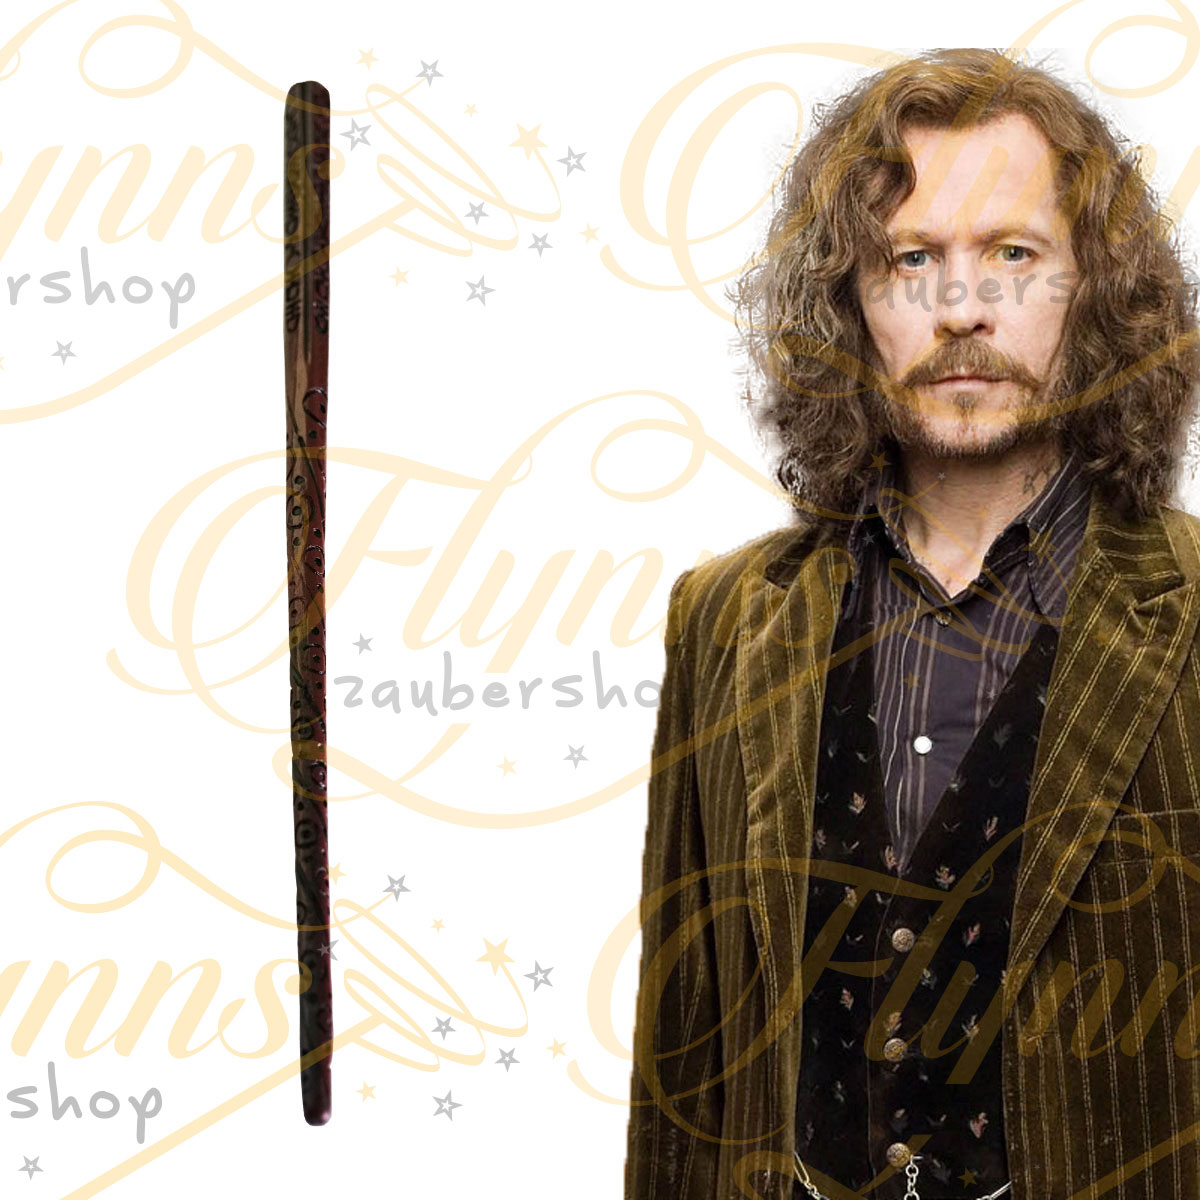 Sirius Black | Harry Potter | Flynns Zaubershop